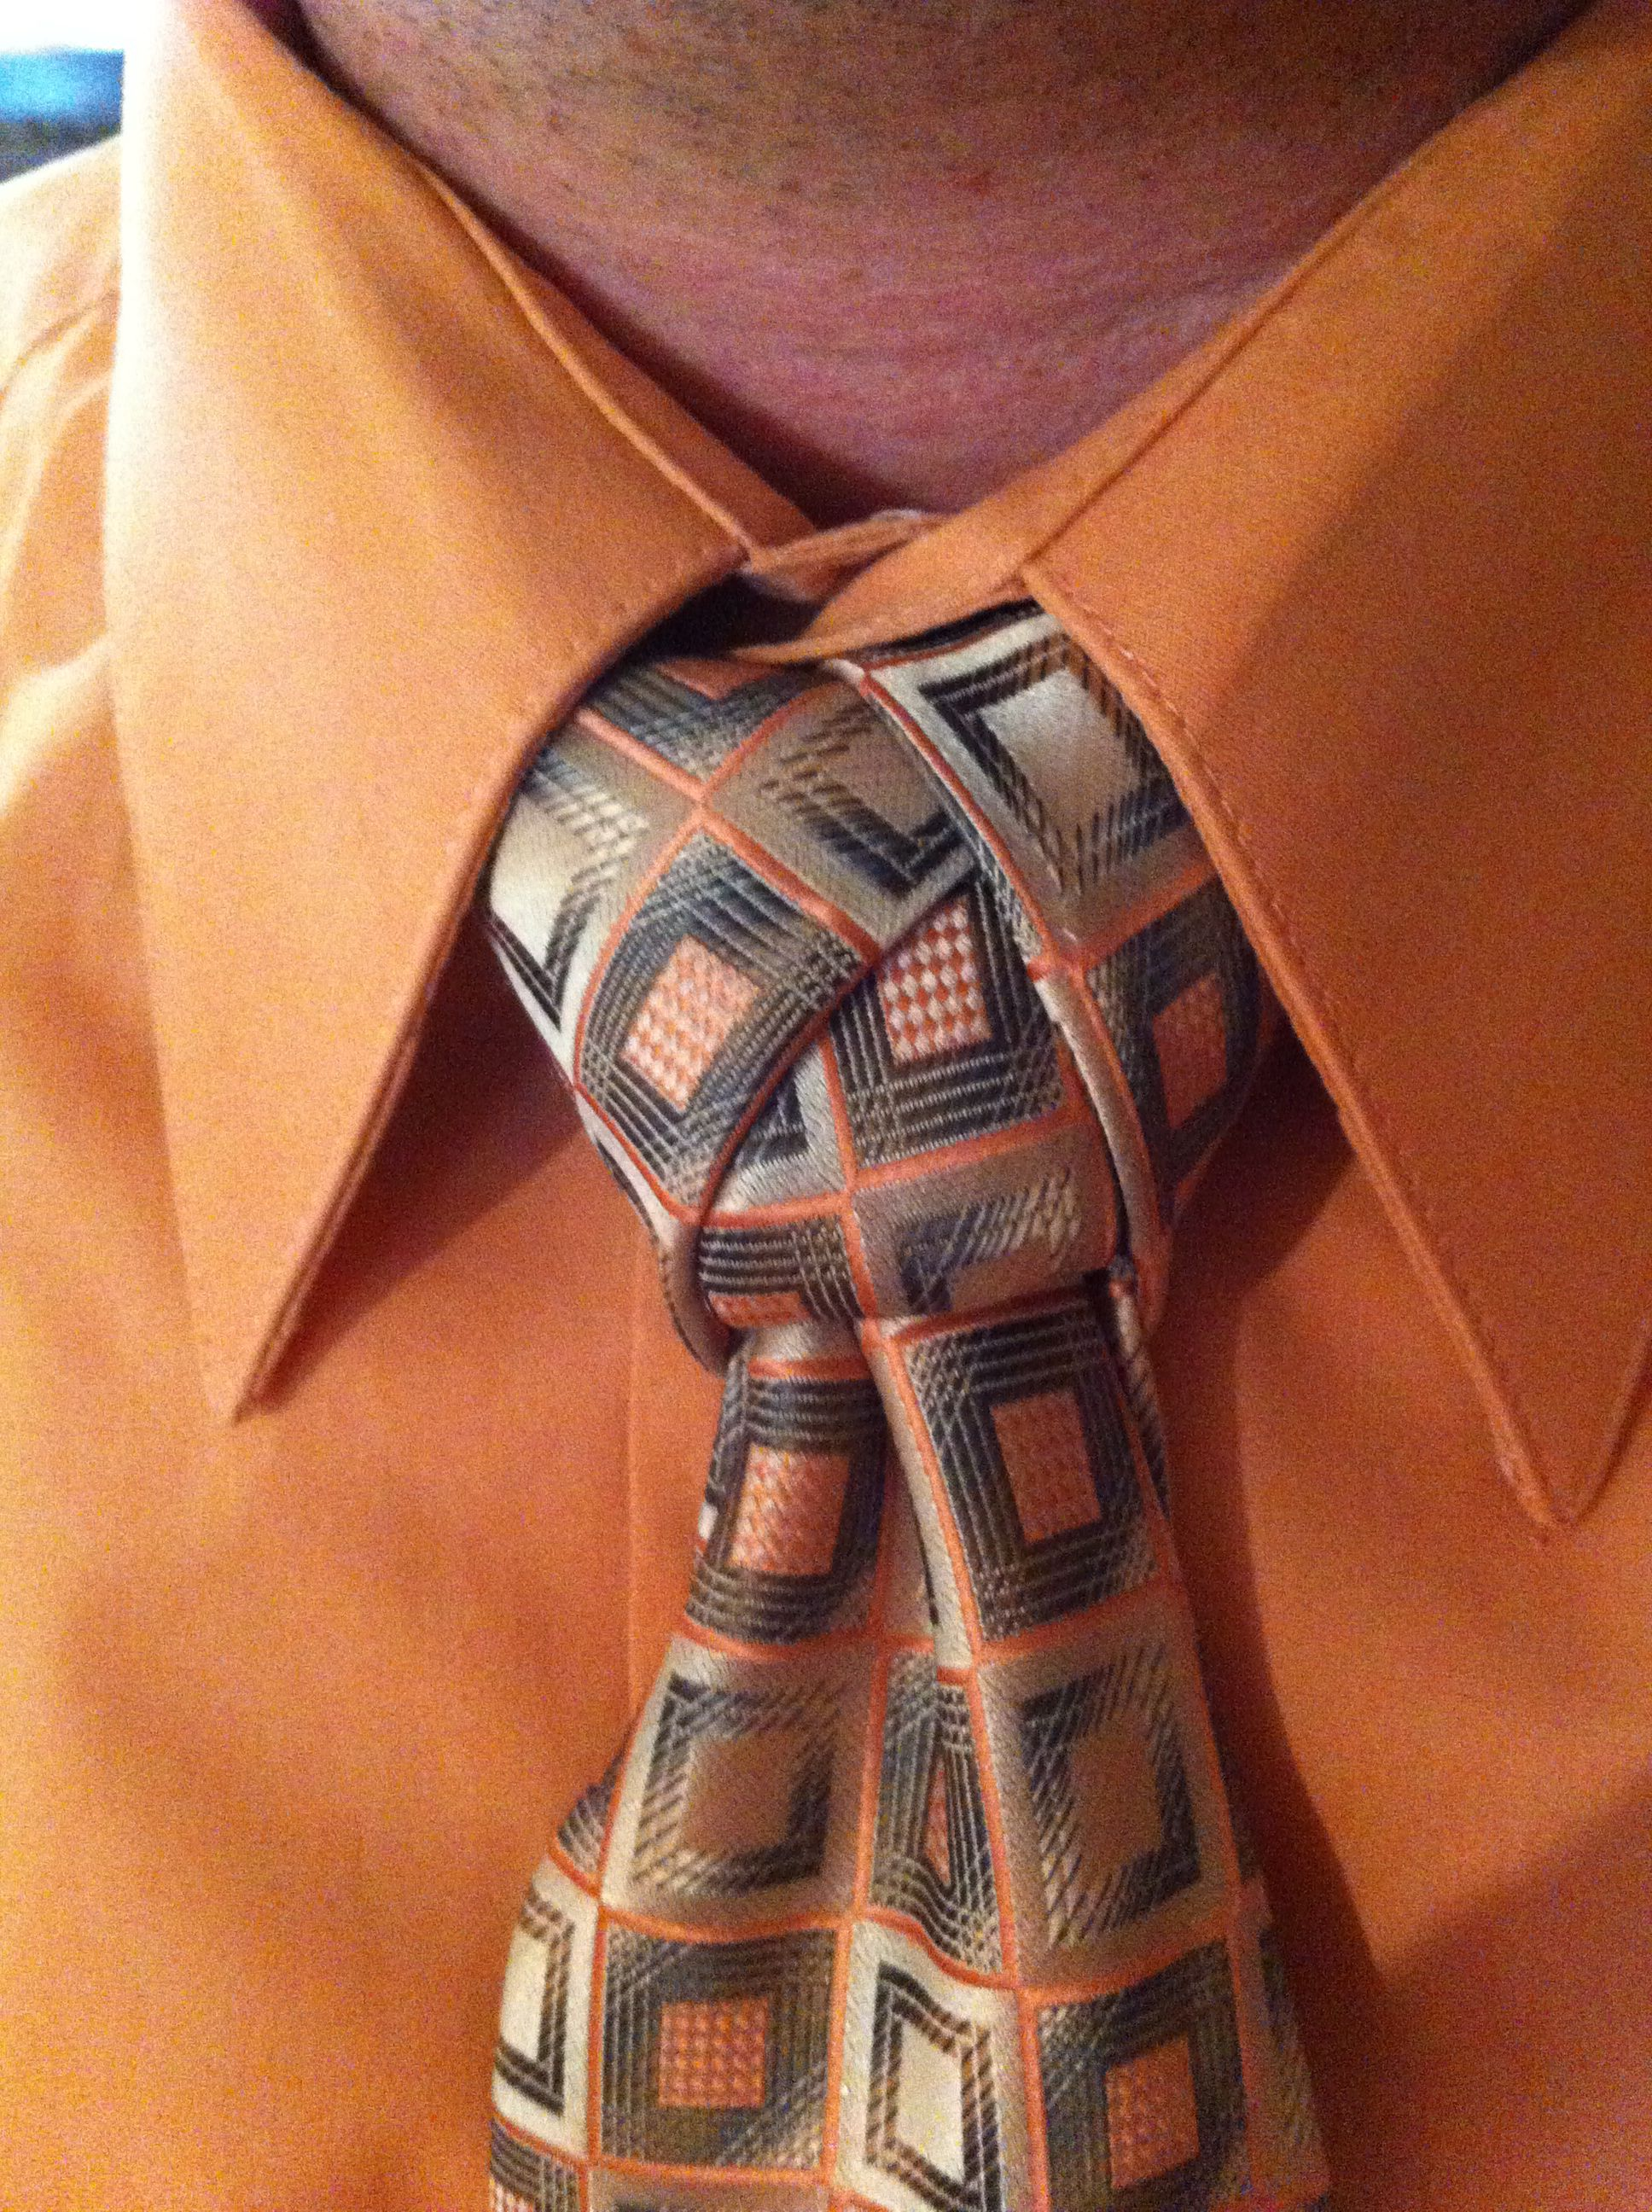 Inverted V Knot Tie Knots Eldredge A Necktie Diagram Learning Ties Trinity